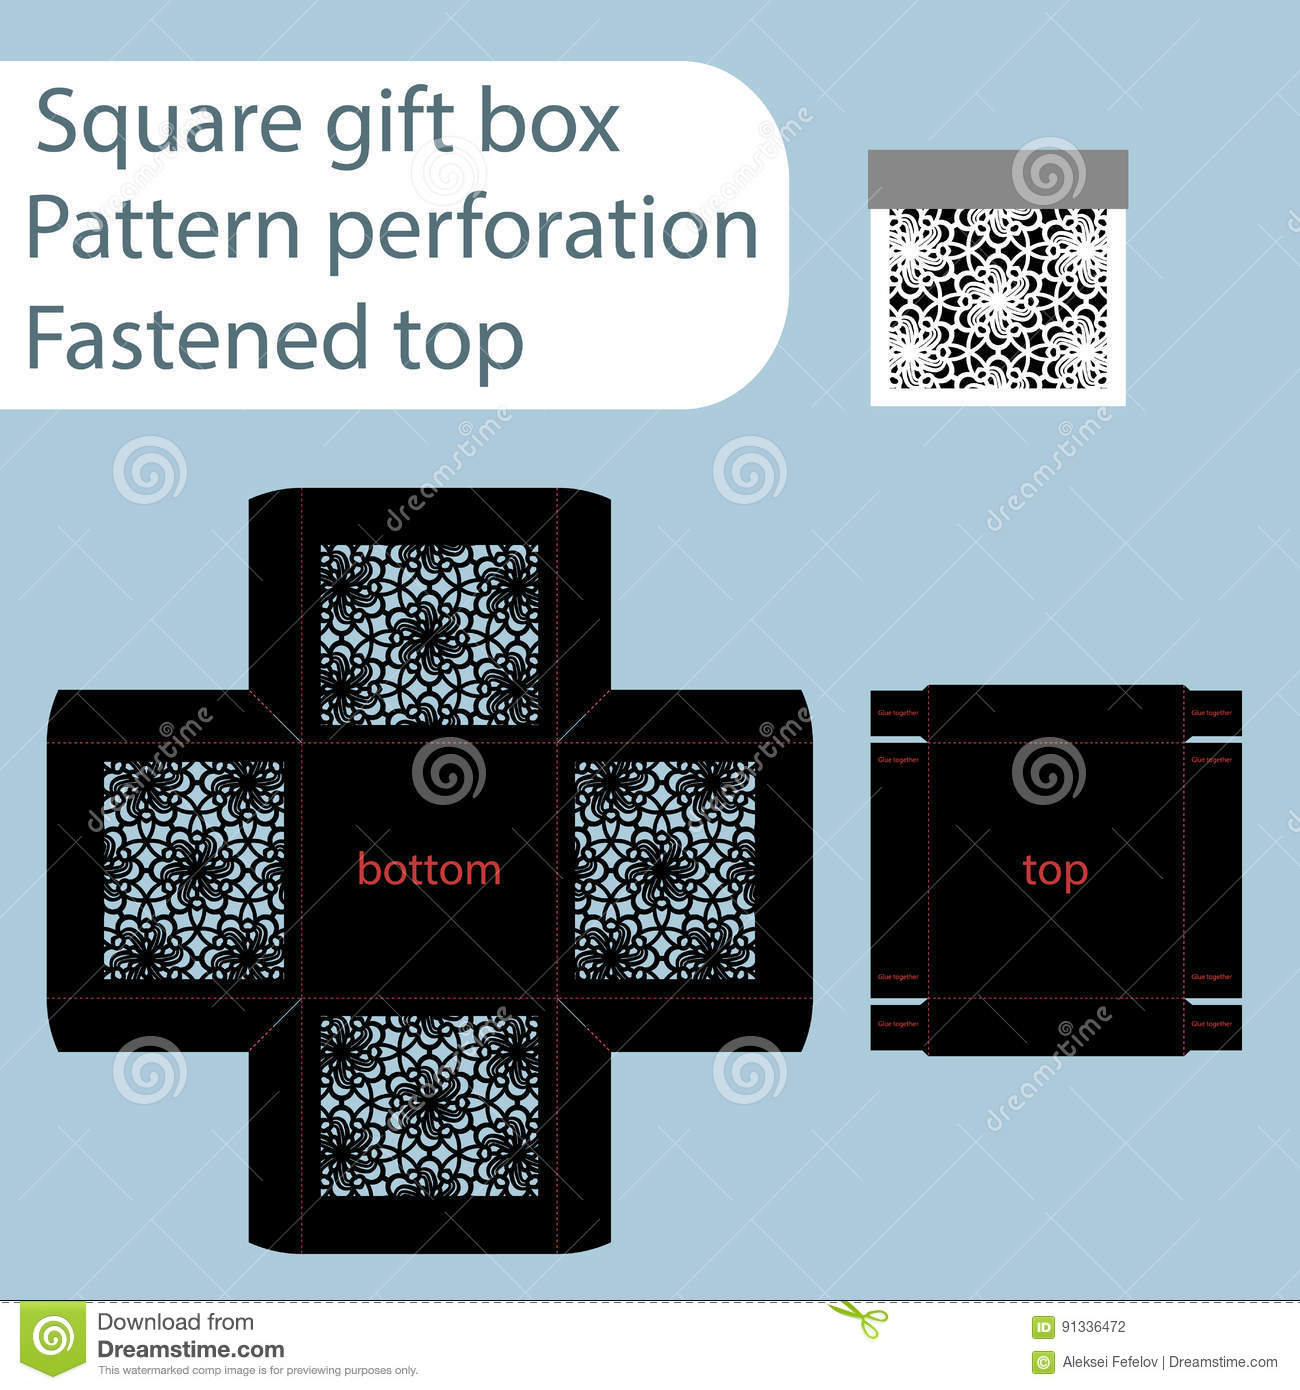 a square paper box box is fastened with a lid cut out template